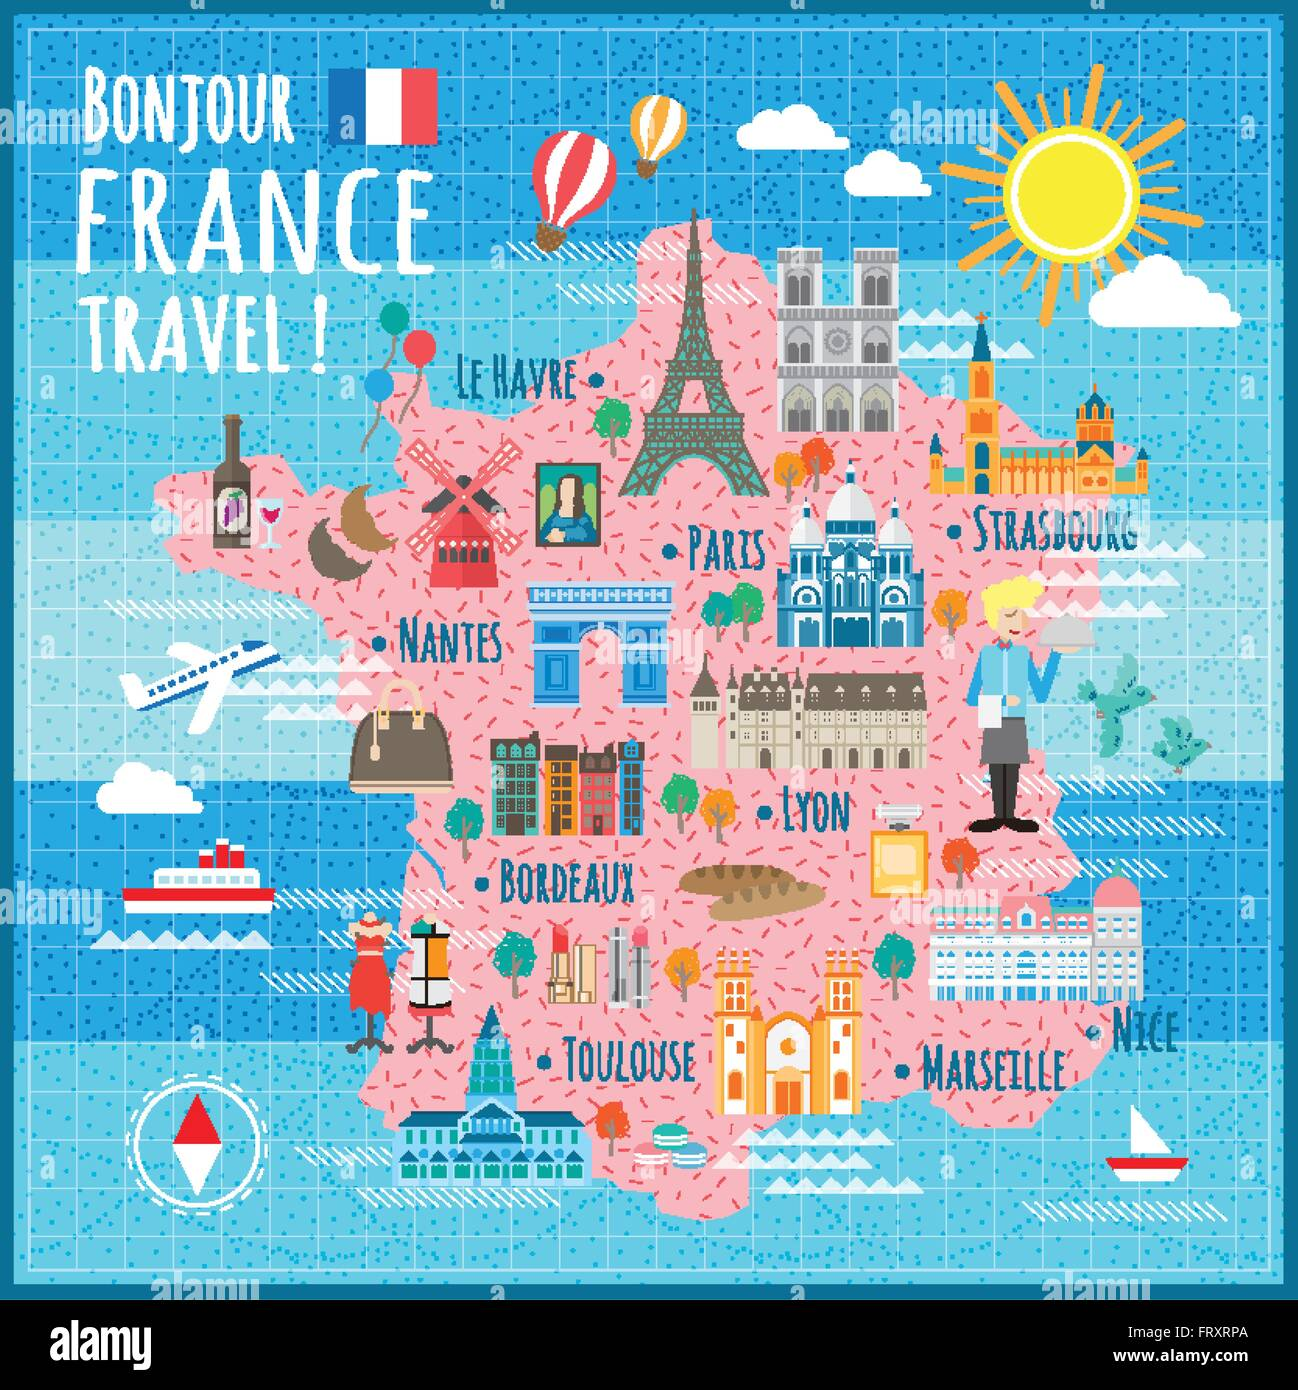 attractive France travel map with attractions and specialties Stock